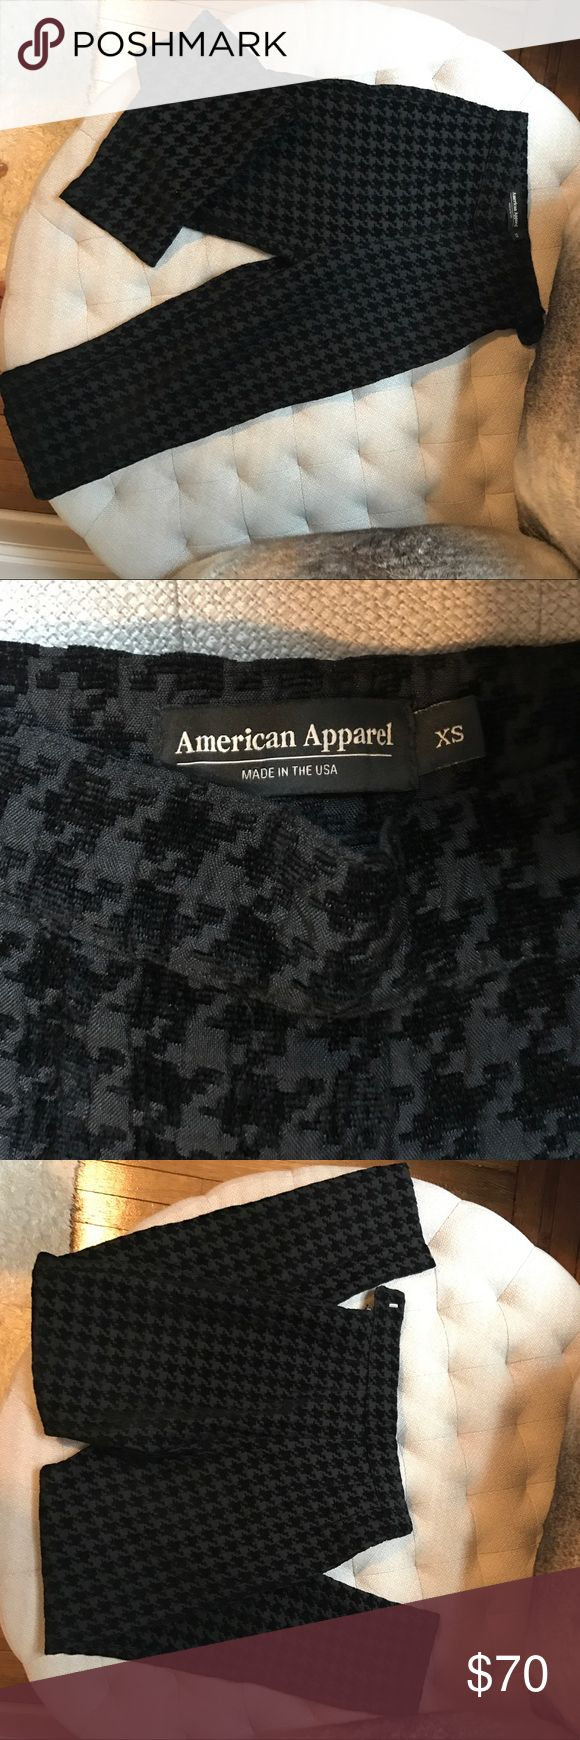 💦AMERICAN APPAREL Houndstooth Trouser American Apparel Houndstooth trouser size XS. Waist defining. Worn one time, like new. Will fit 24inch waist. American Apparel Pants Ankle & Cropped